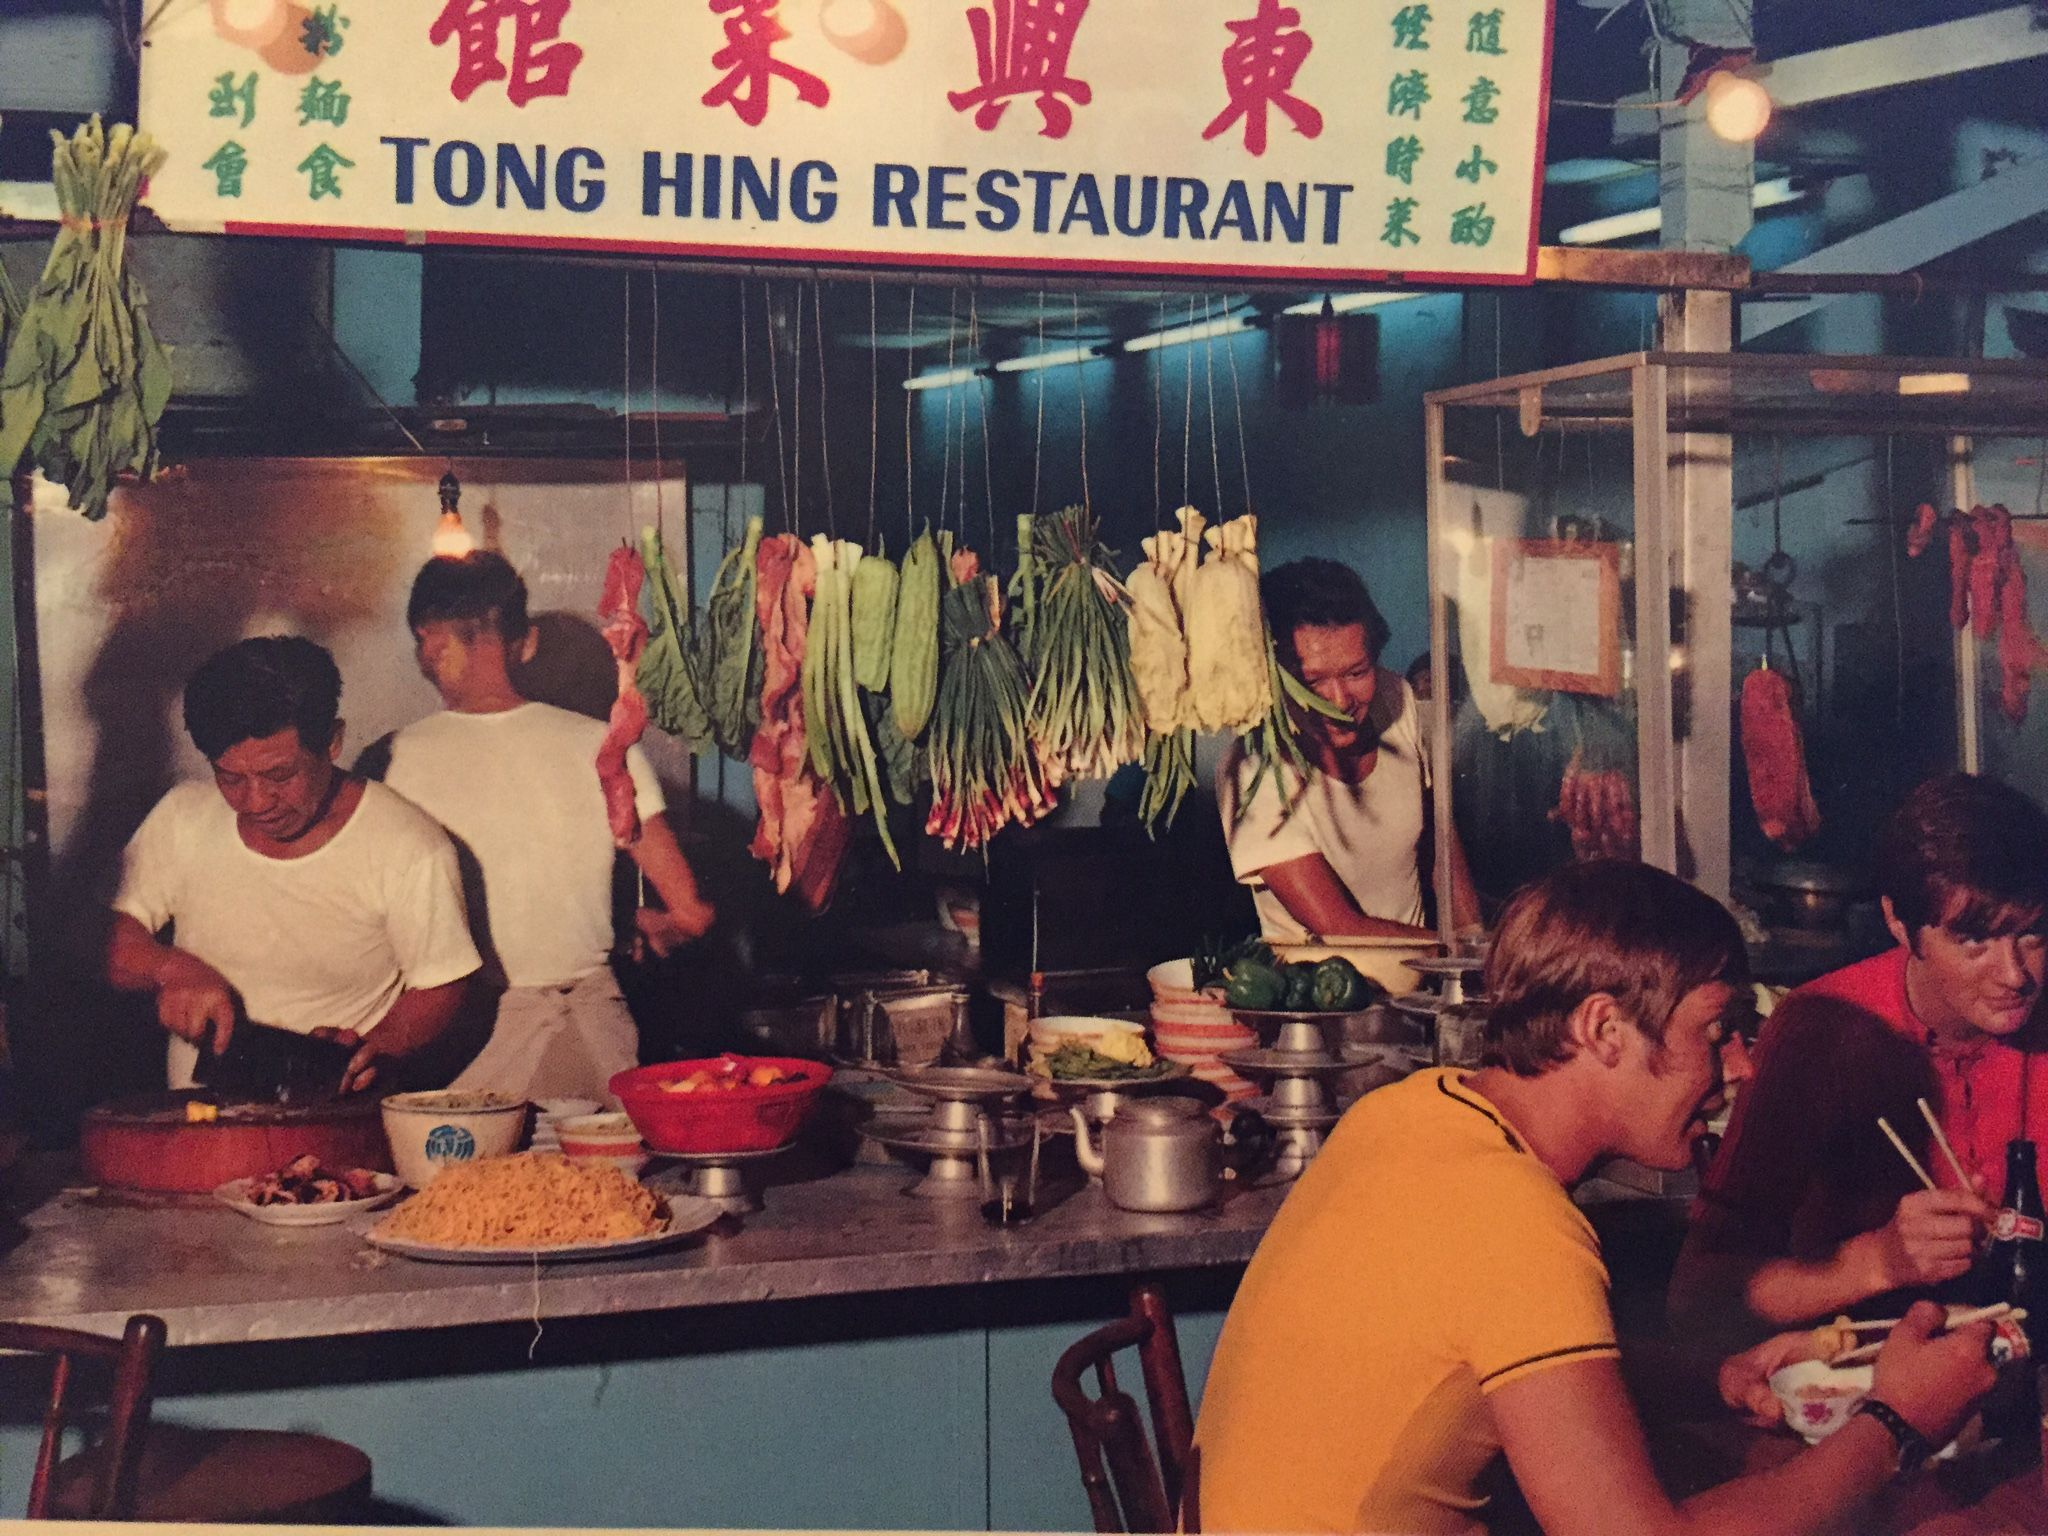 Bugis Street Foodstall Singapore Postcard 1970s Singapore Photos History Of Singapore Hong Kong Restaurants